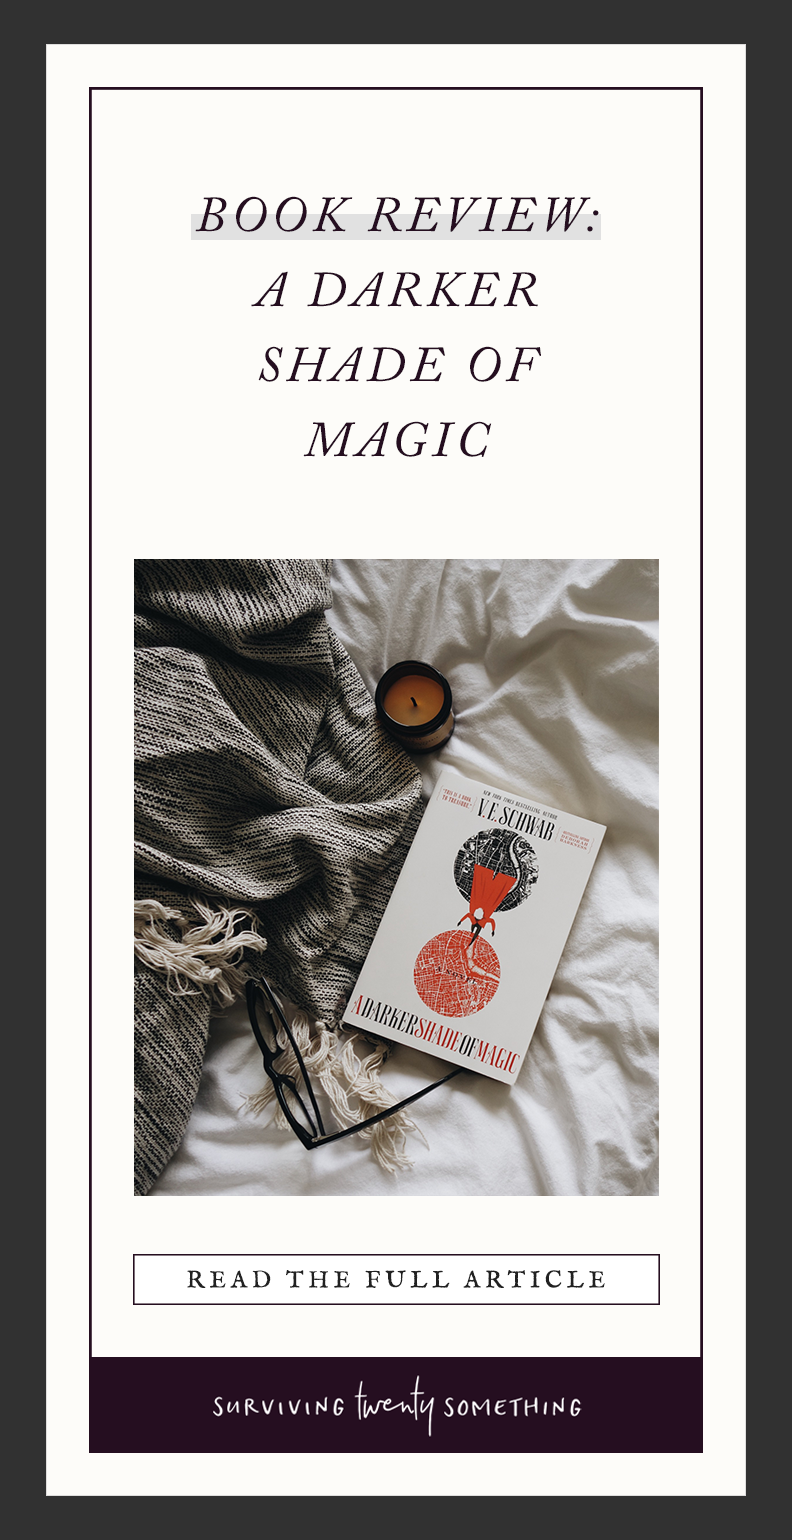 BOOK REVIEW: A DARKER SHADE OF MAGIC // You know when you pick up a new book and within the first paragraph you have bone-deep, unshakeable certainty you've found something that will become a new favourite? Enter: A Darker Shade of Magic.